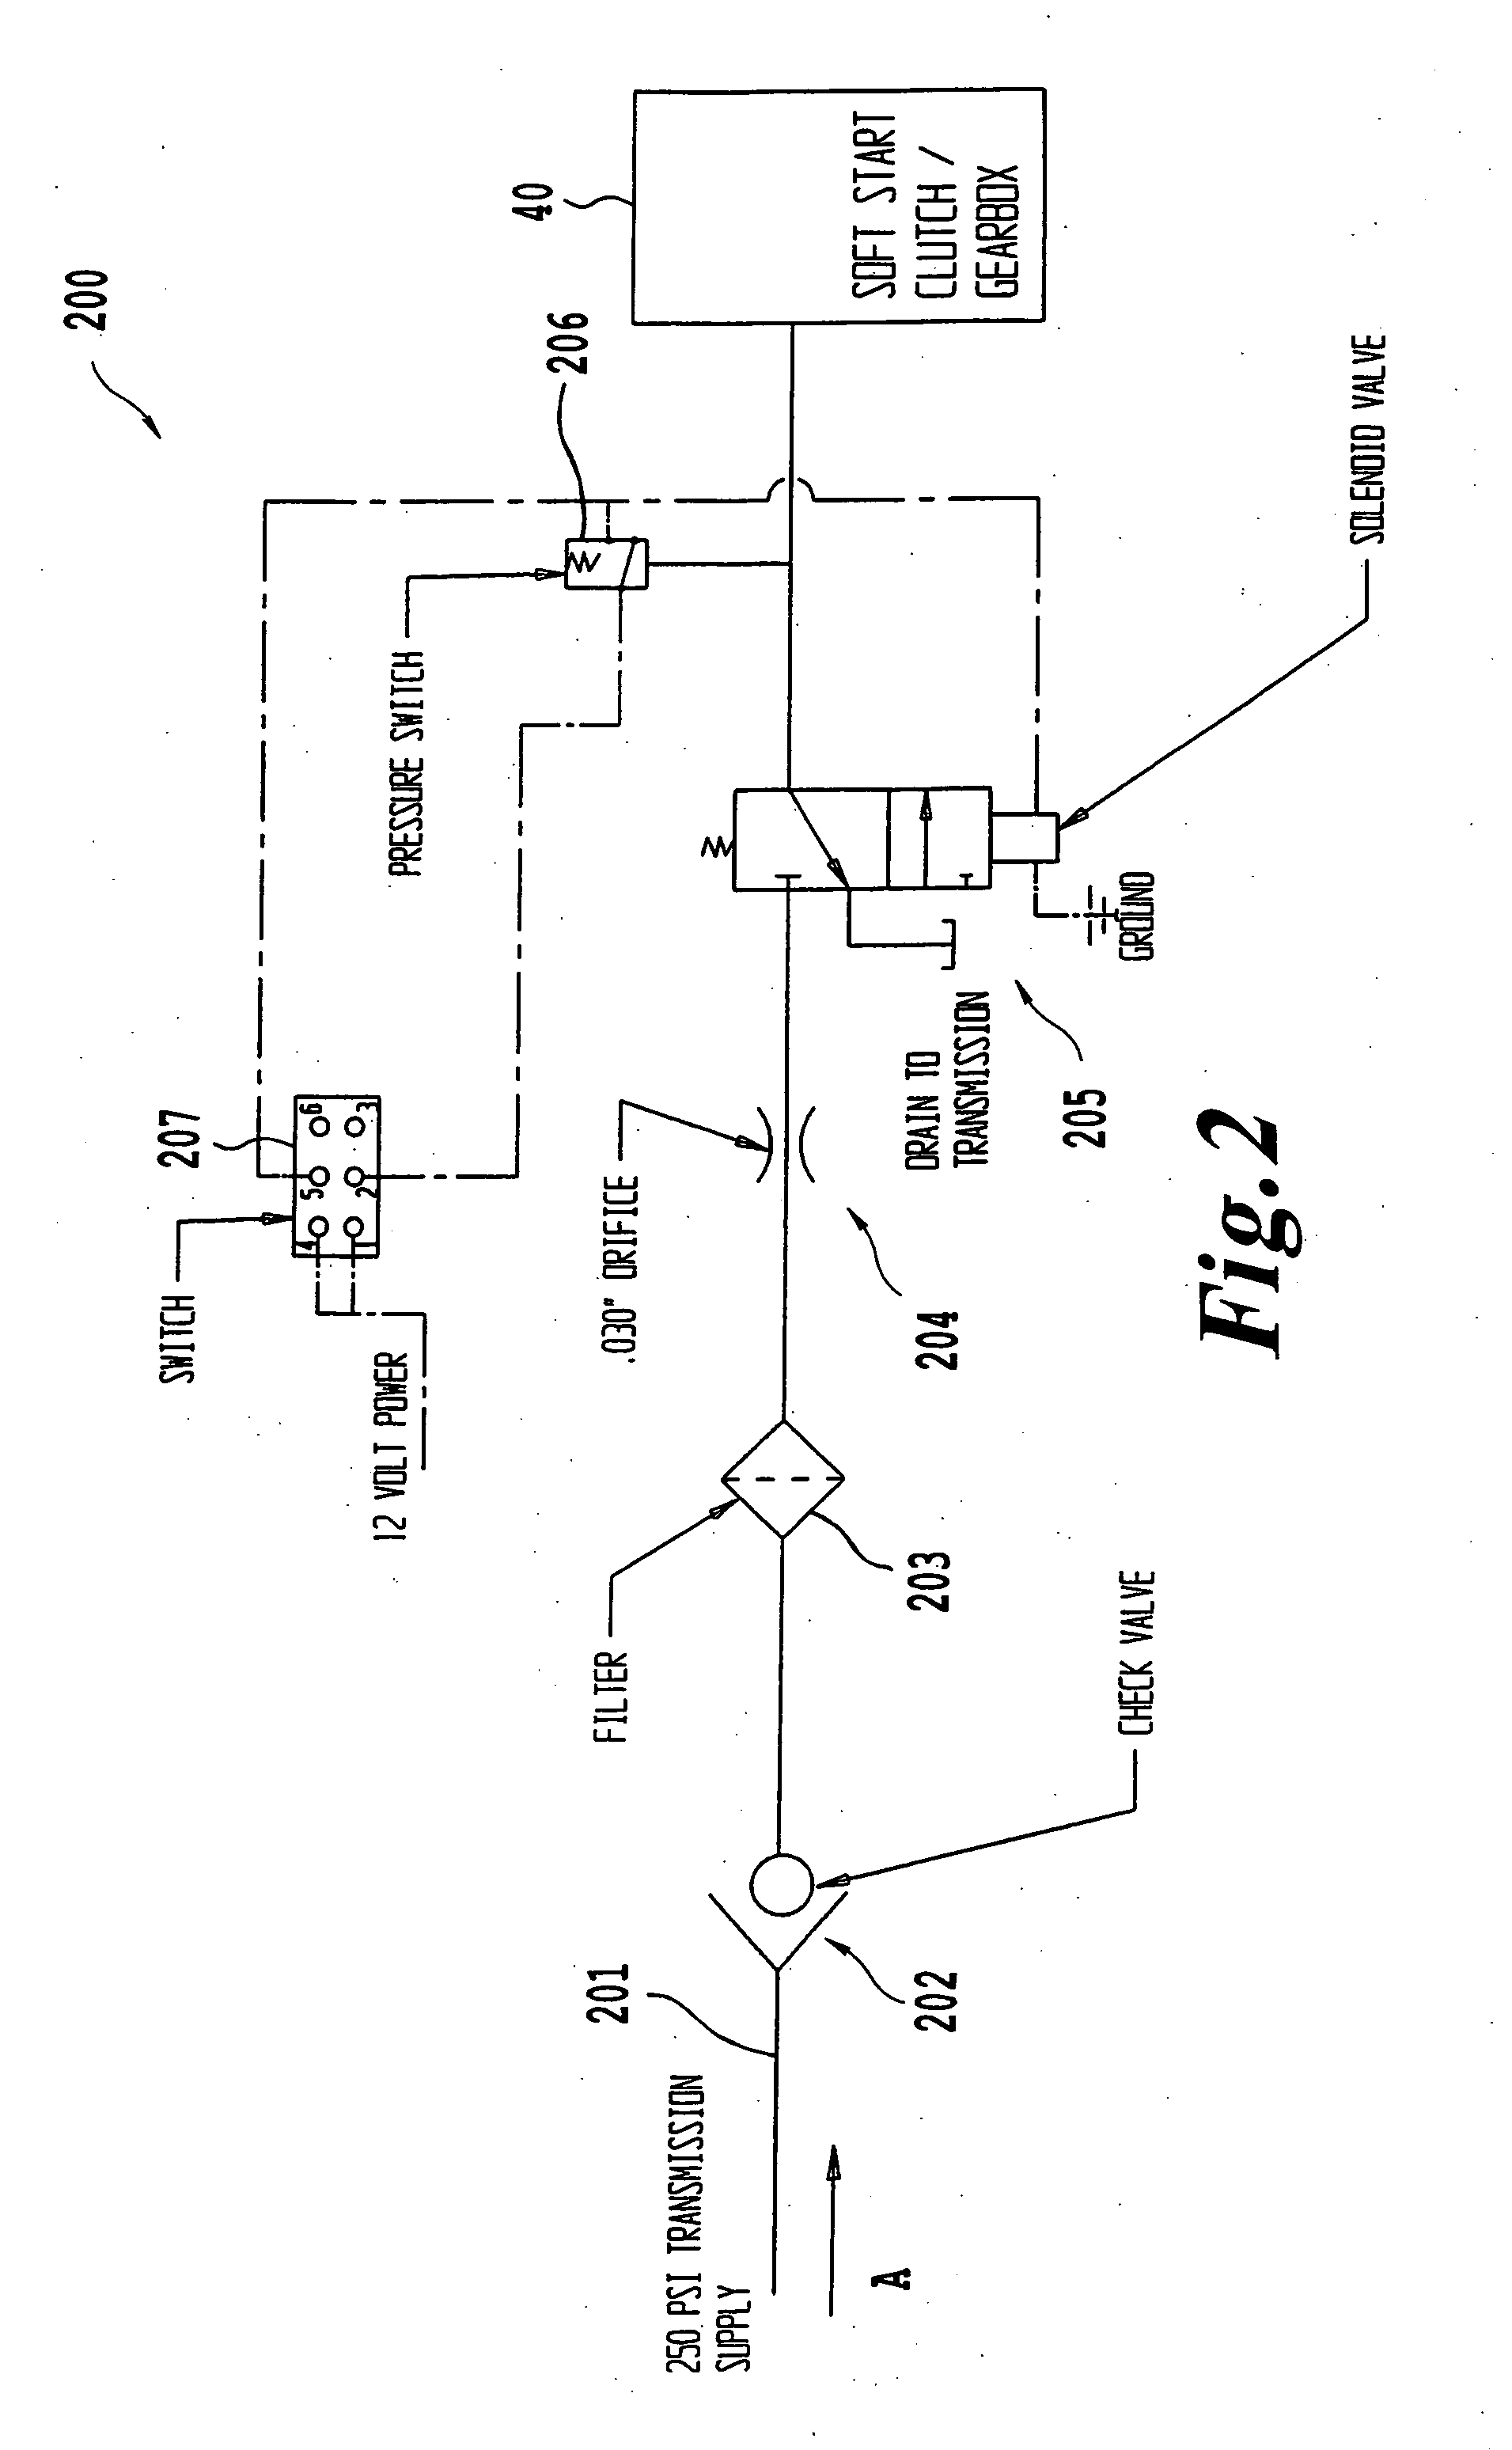 US20060214035A1 20060928 D00003 patent us20060214035 system and method of implementing a soft PTO Switch Wiring Diagram for Massey Furgeson at couponss.co